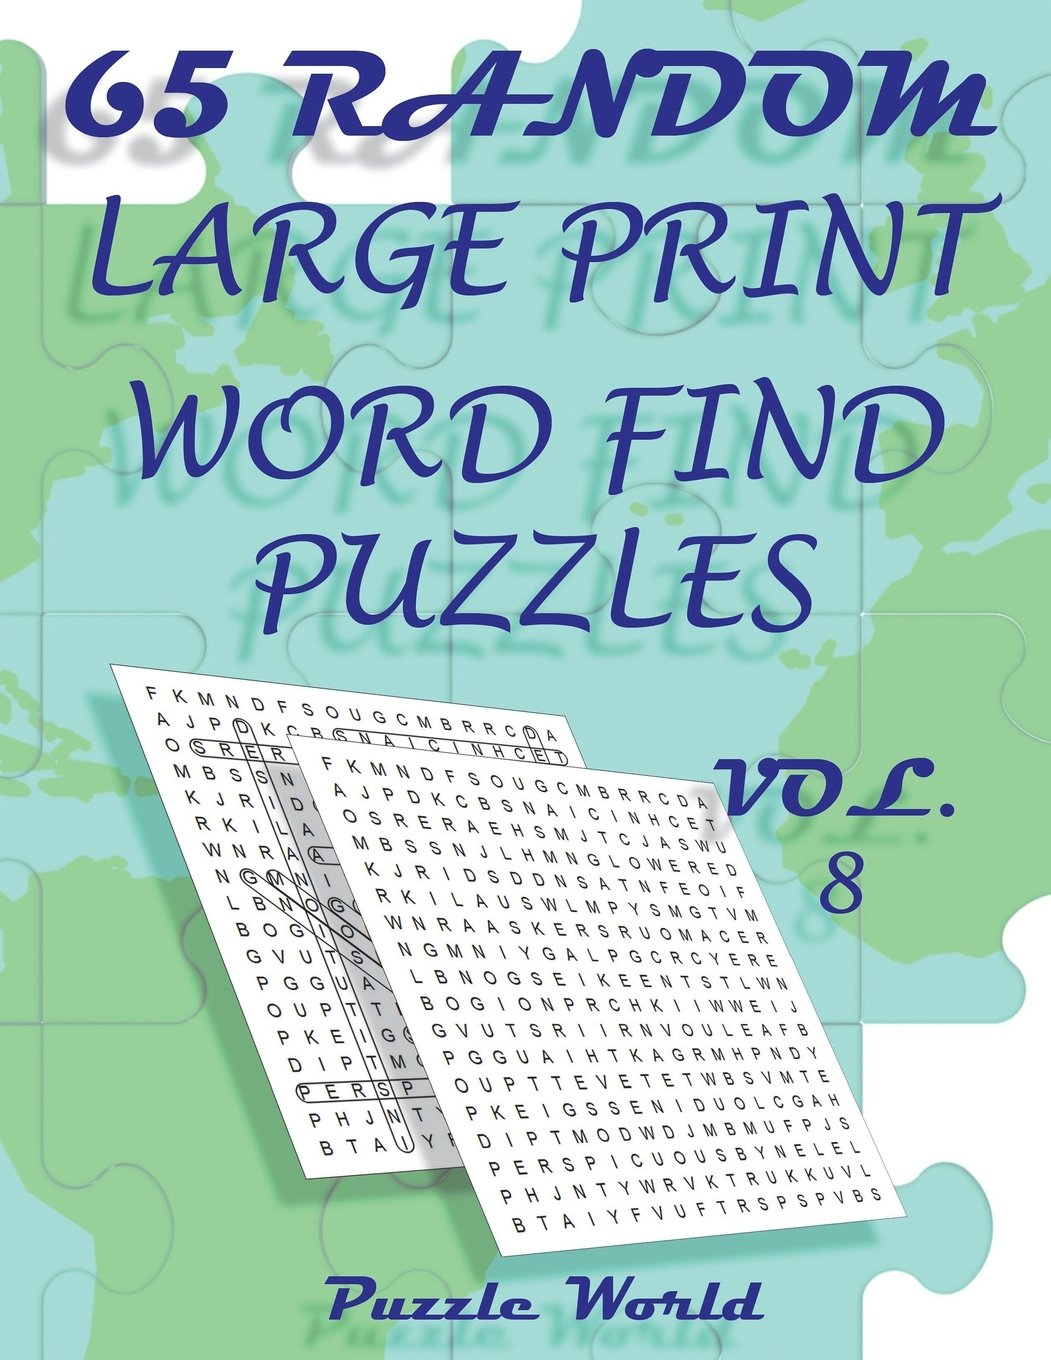 Download Puzzle World 65 Random Large Print Word Find Puzzles - Volume 8: Brain Games for Your Mind (Fun Word Search Book Series) PDF